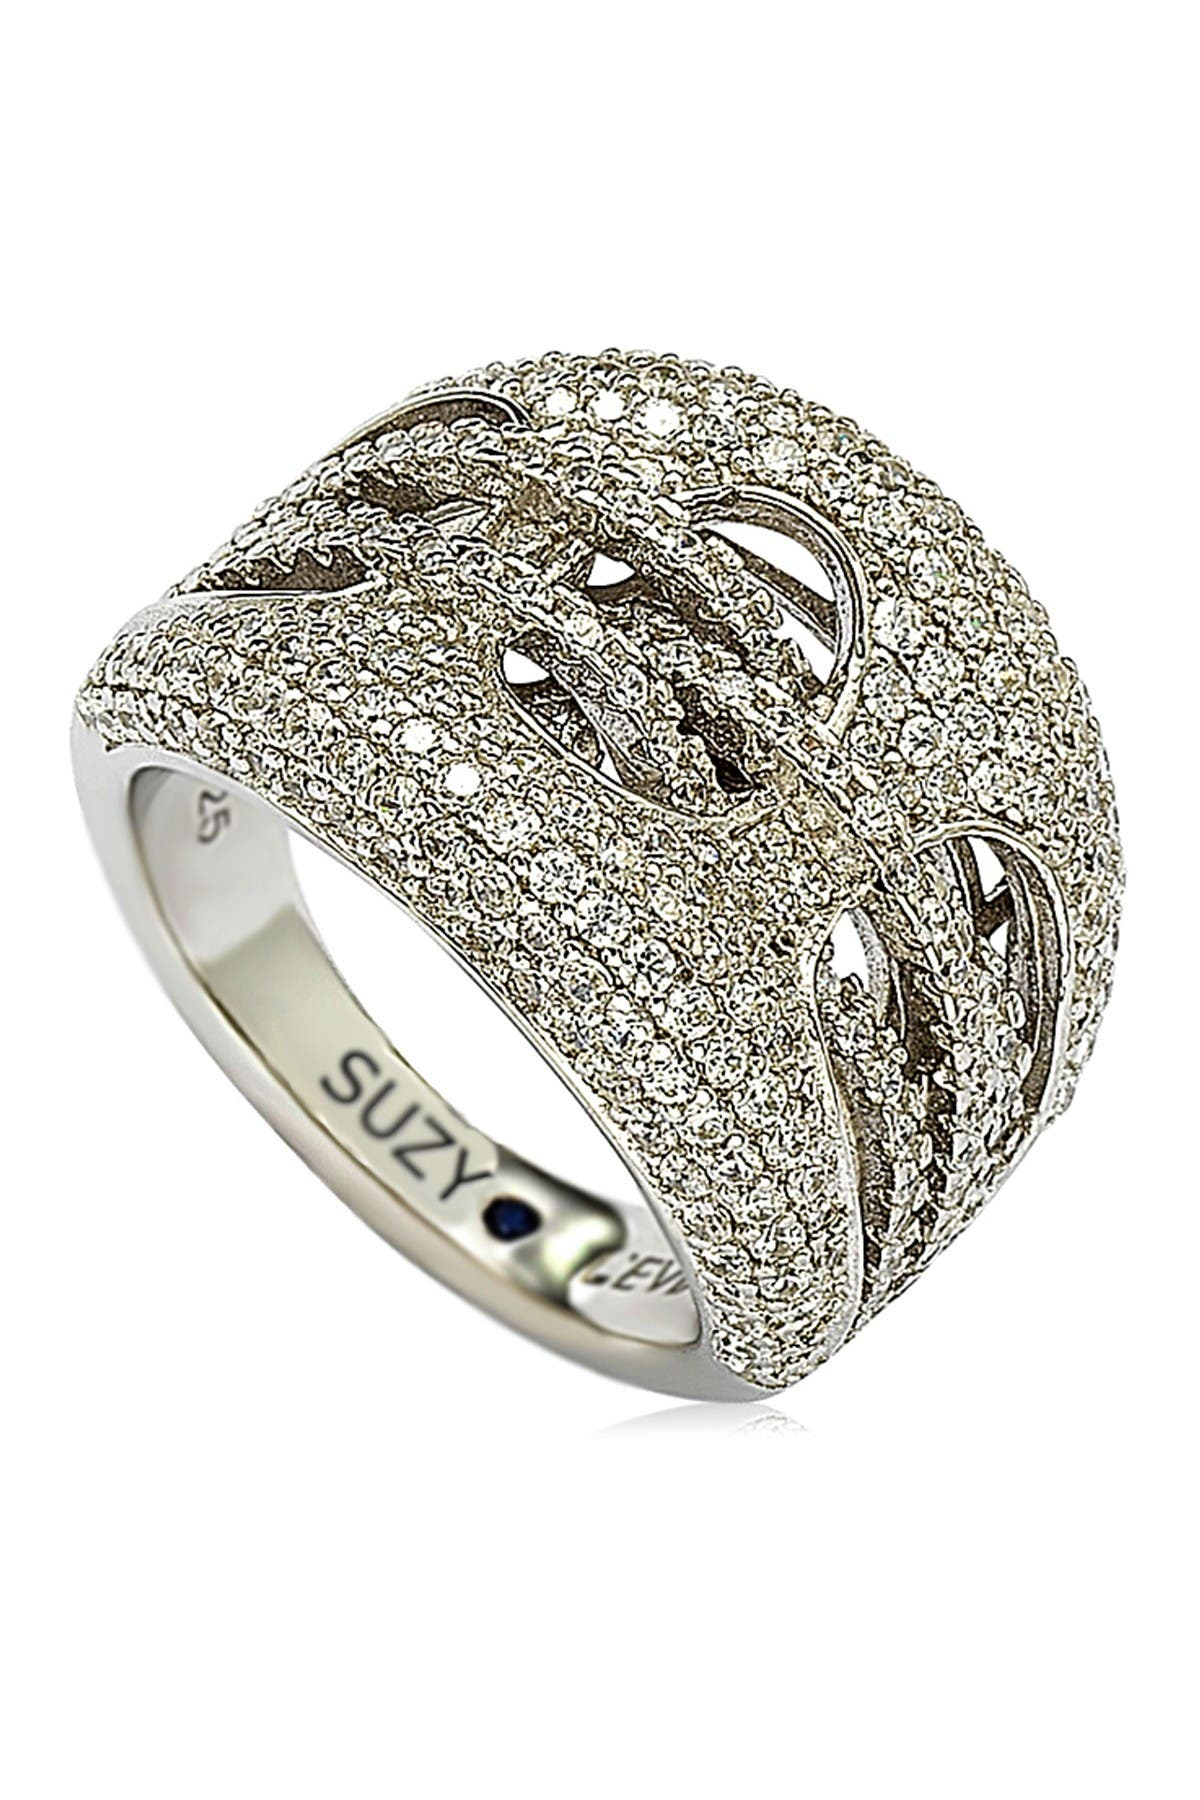 Image of Suzy Levian Sterling Silver CZ Gladiator Weaving Ring